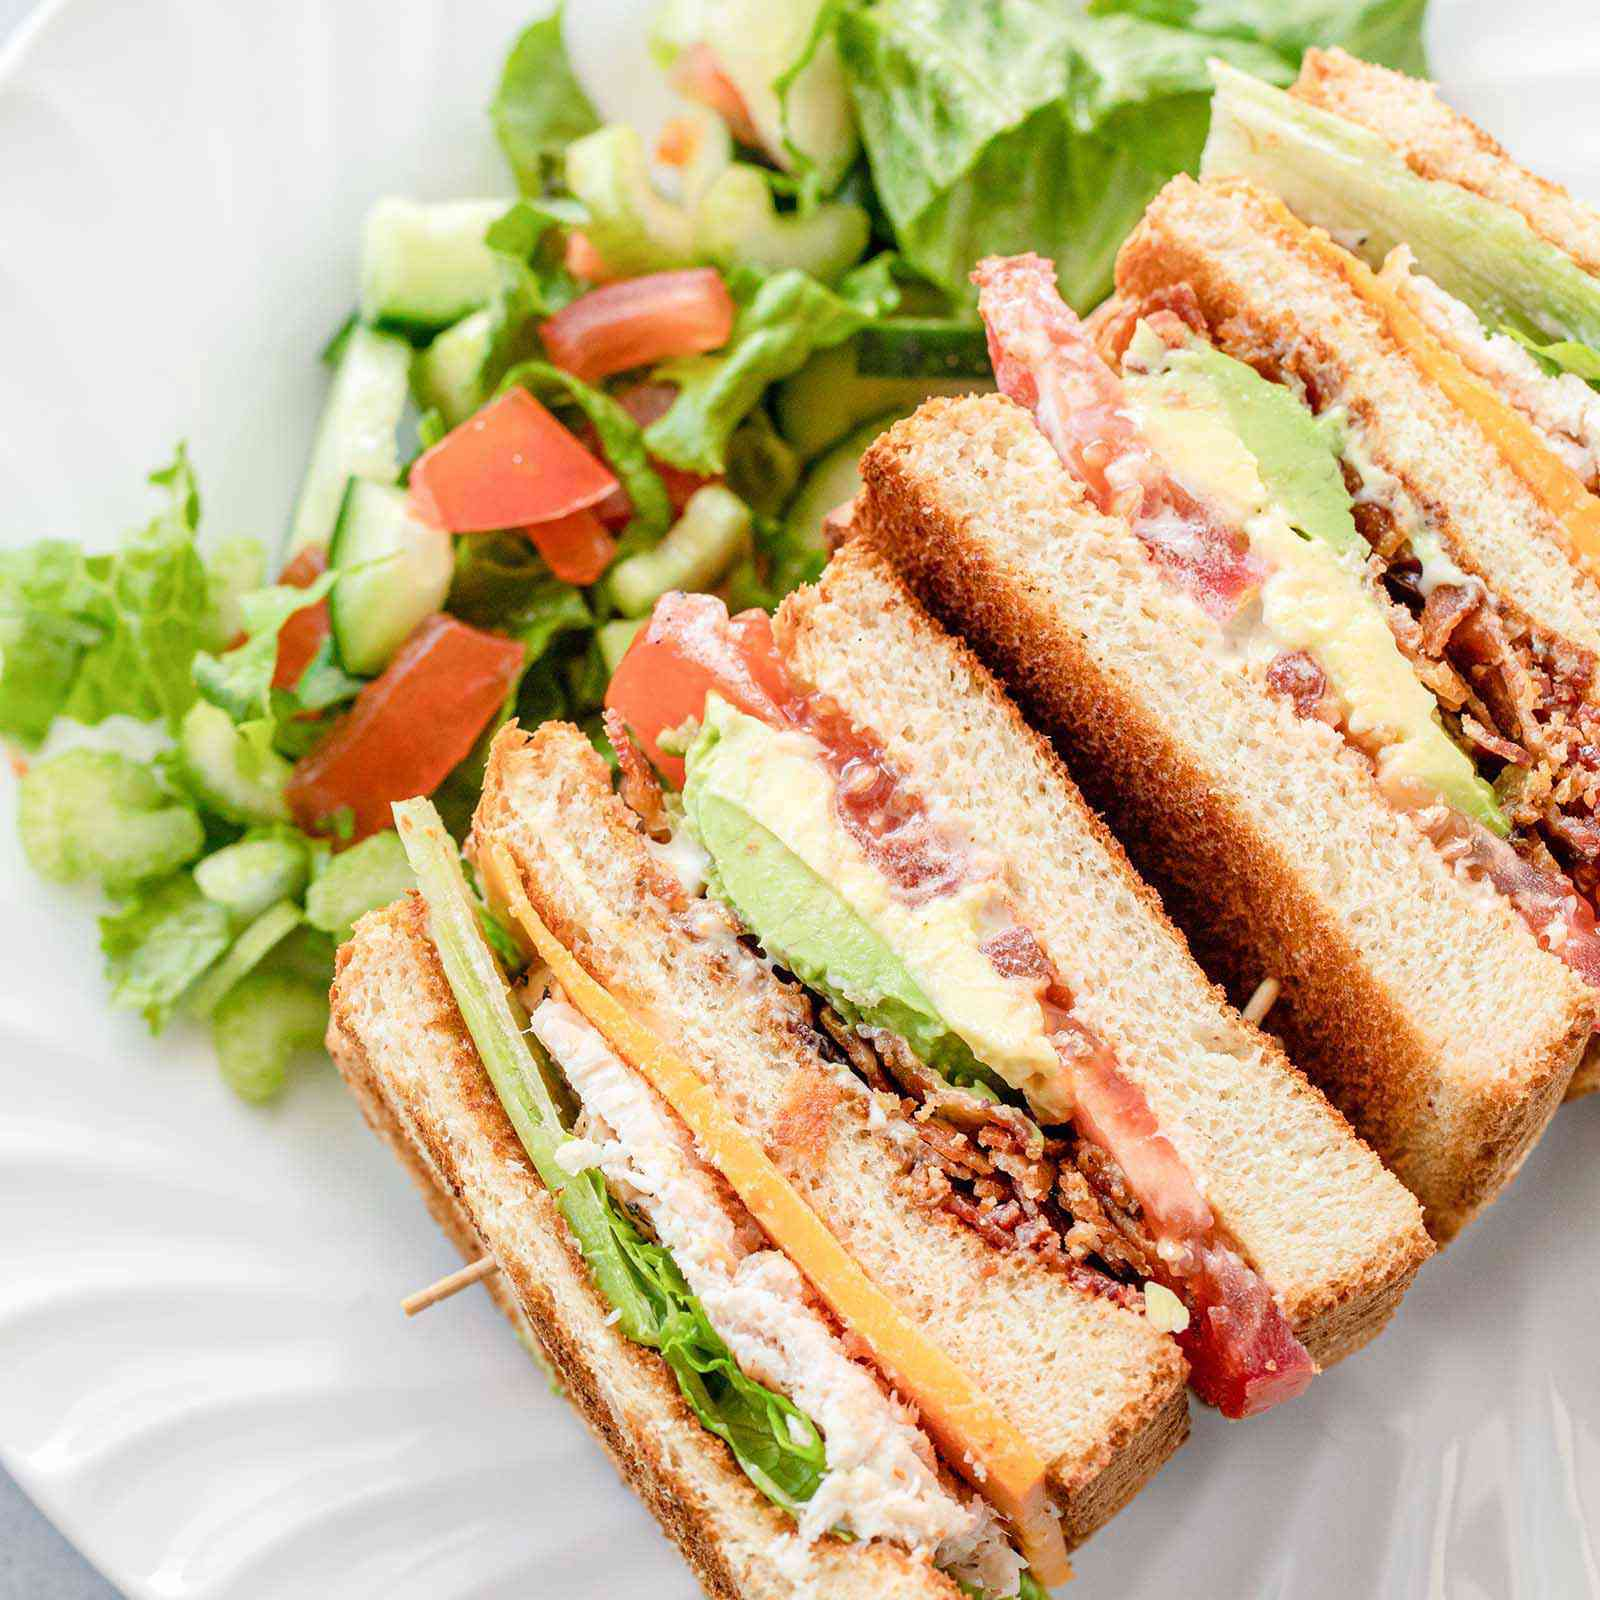 Overhead view of a turkey club sandwich on its side. A lettuce salad with cucumber and tomato is on the plate behind the sandwich.